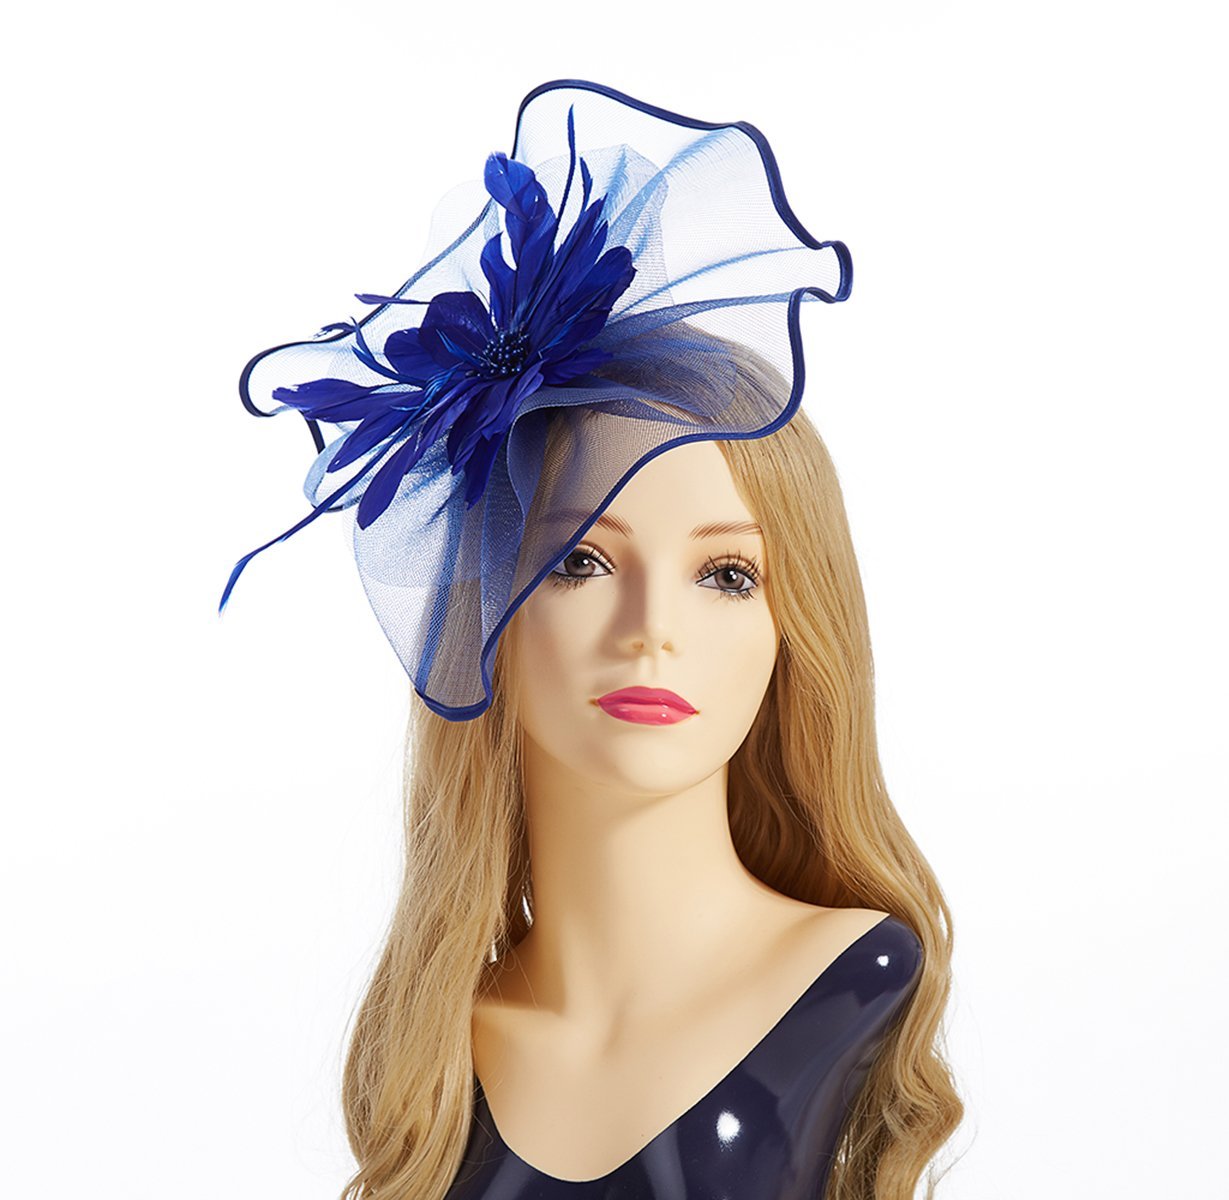 Fascinator Hat,Aiskki Fascinator Headband Feather Mesh Net Hat With Hairband,Tea Party Headwear,Flower Derby Hat with Clip,Kentucky Derby Hats for Women(Blue)